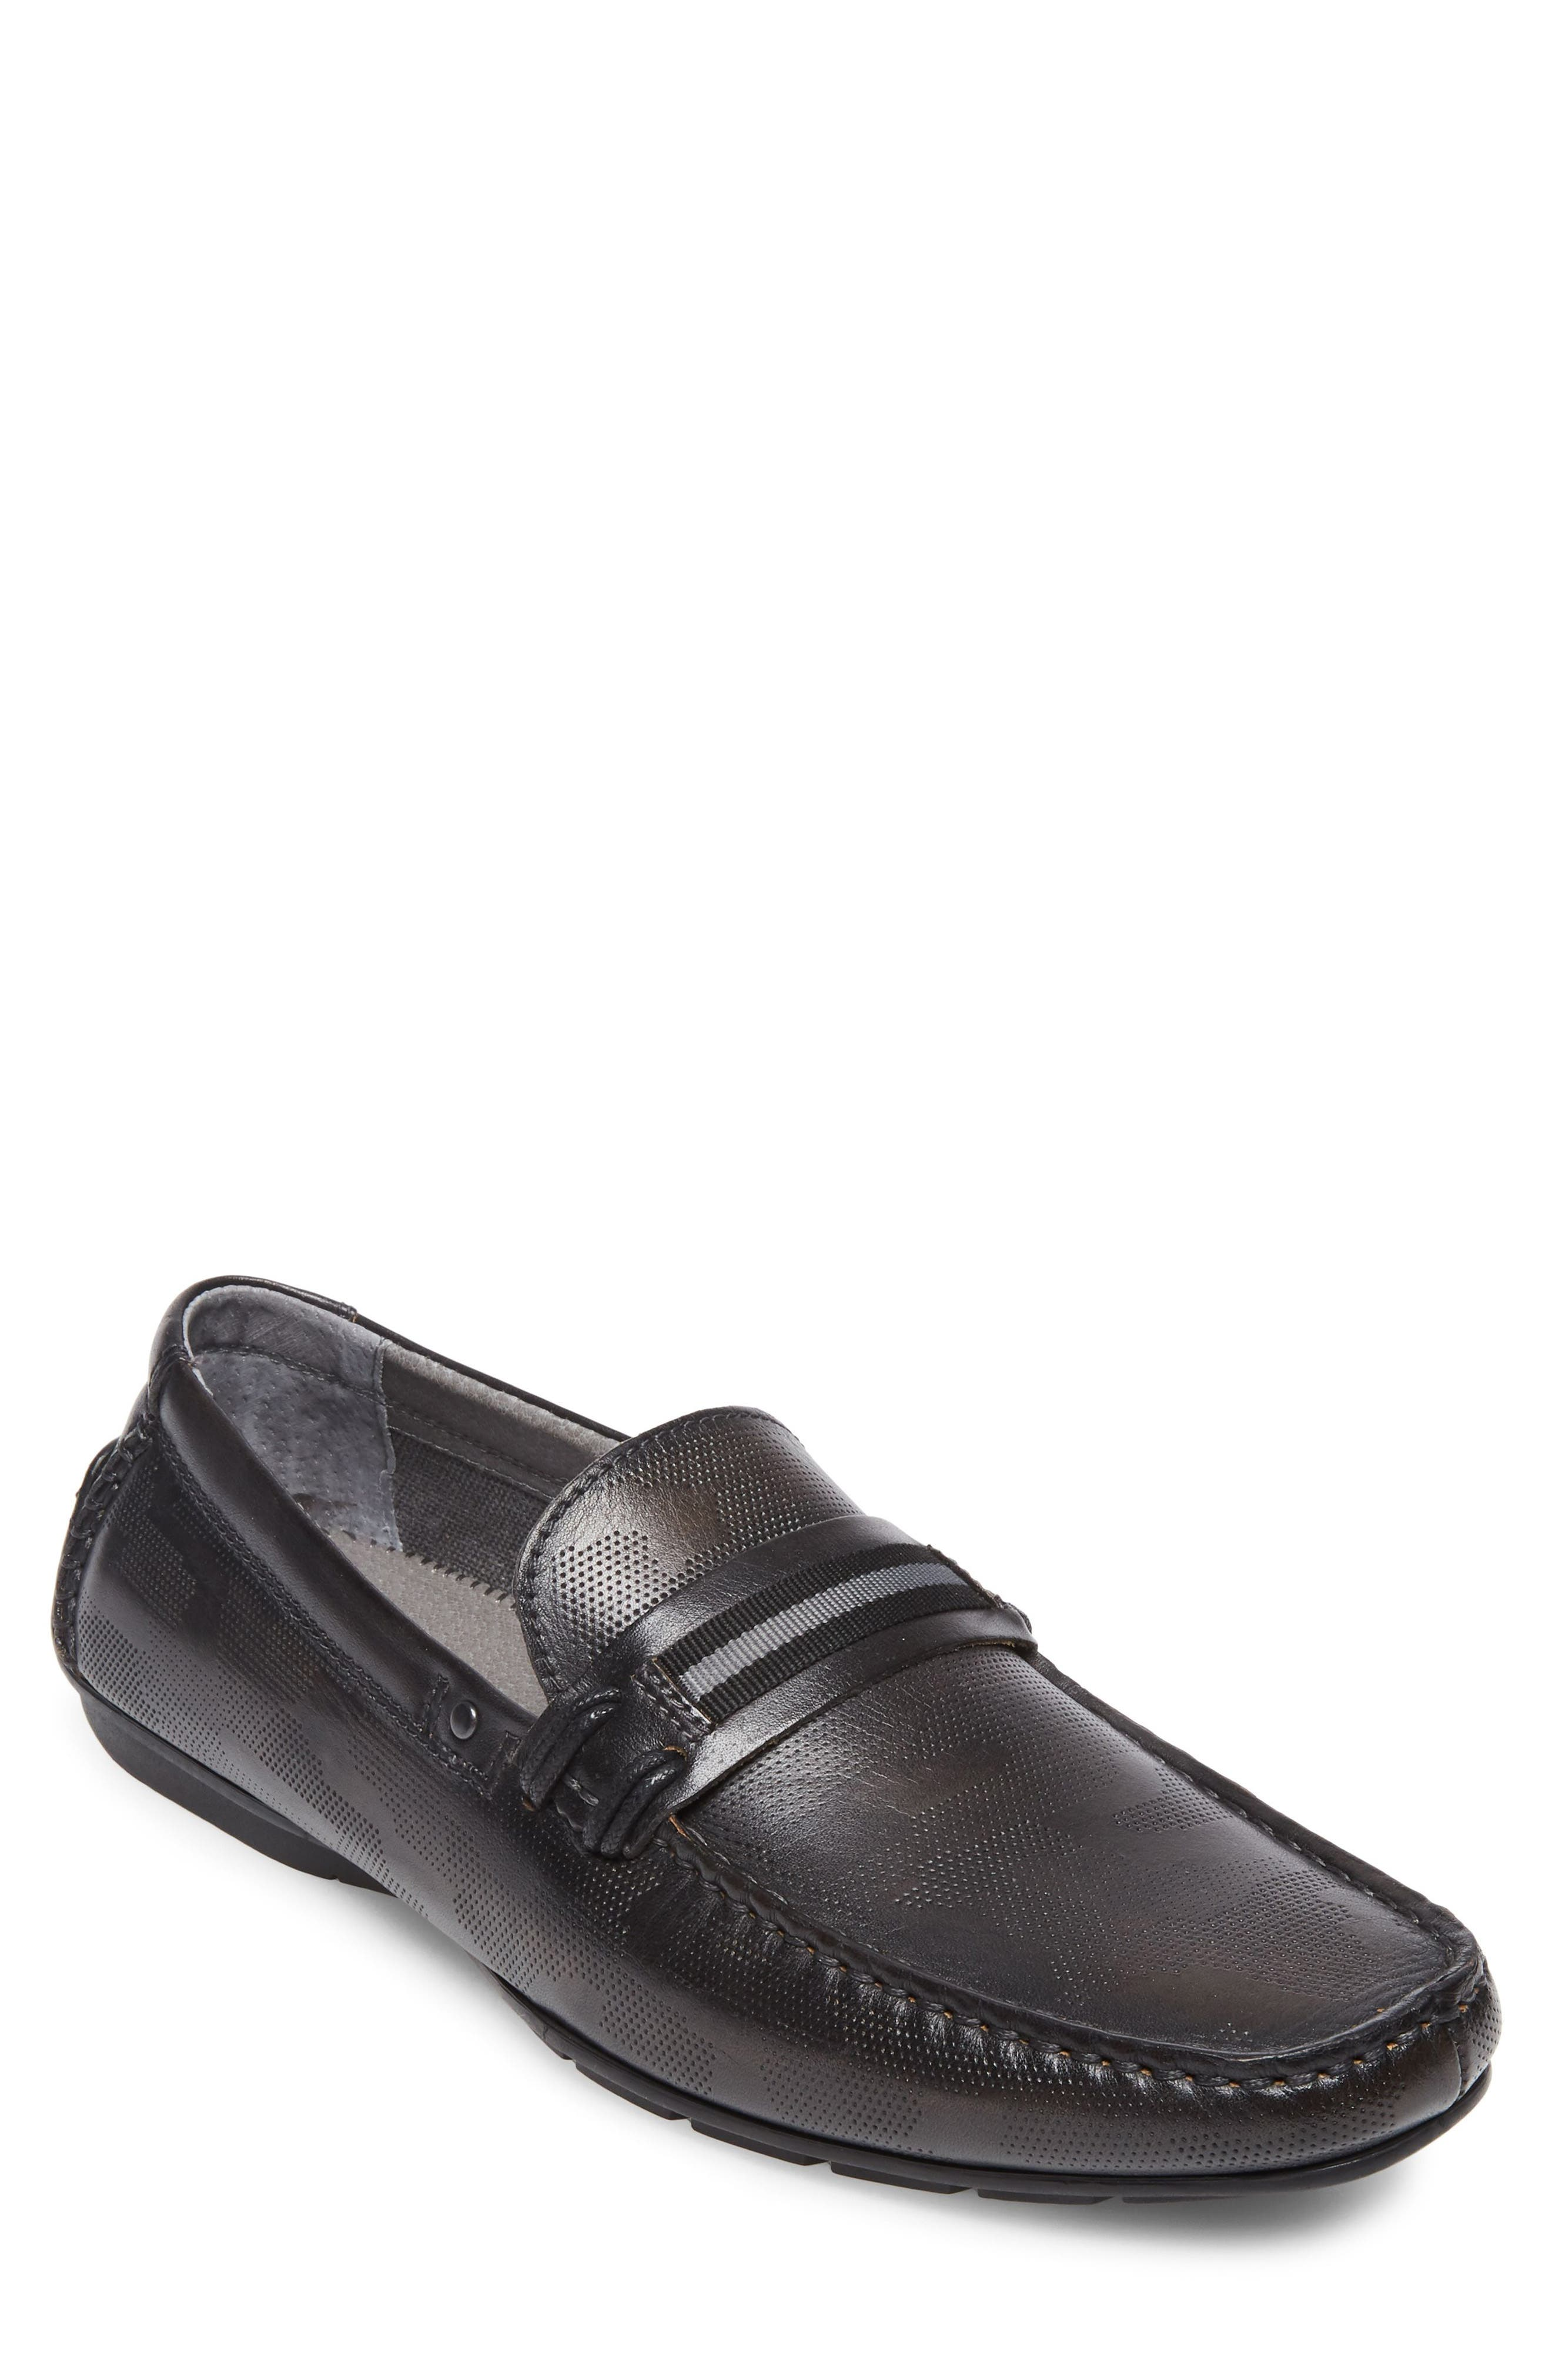 Garvet Textured Driving Loafer,                             Main thumbnail 1, color,                             BLACK LEATHER